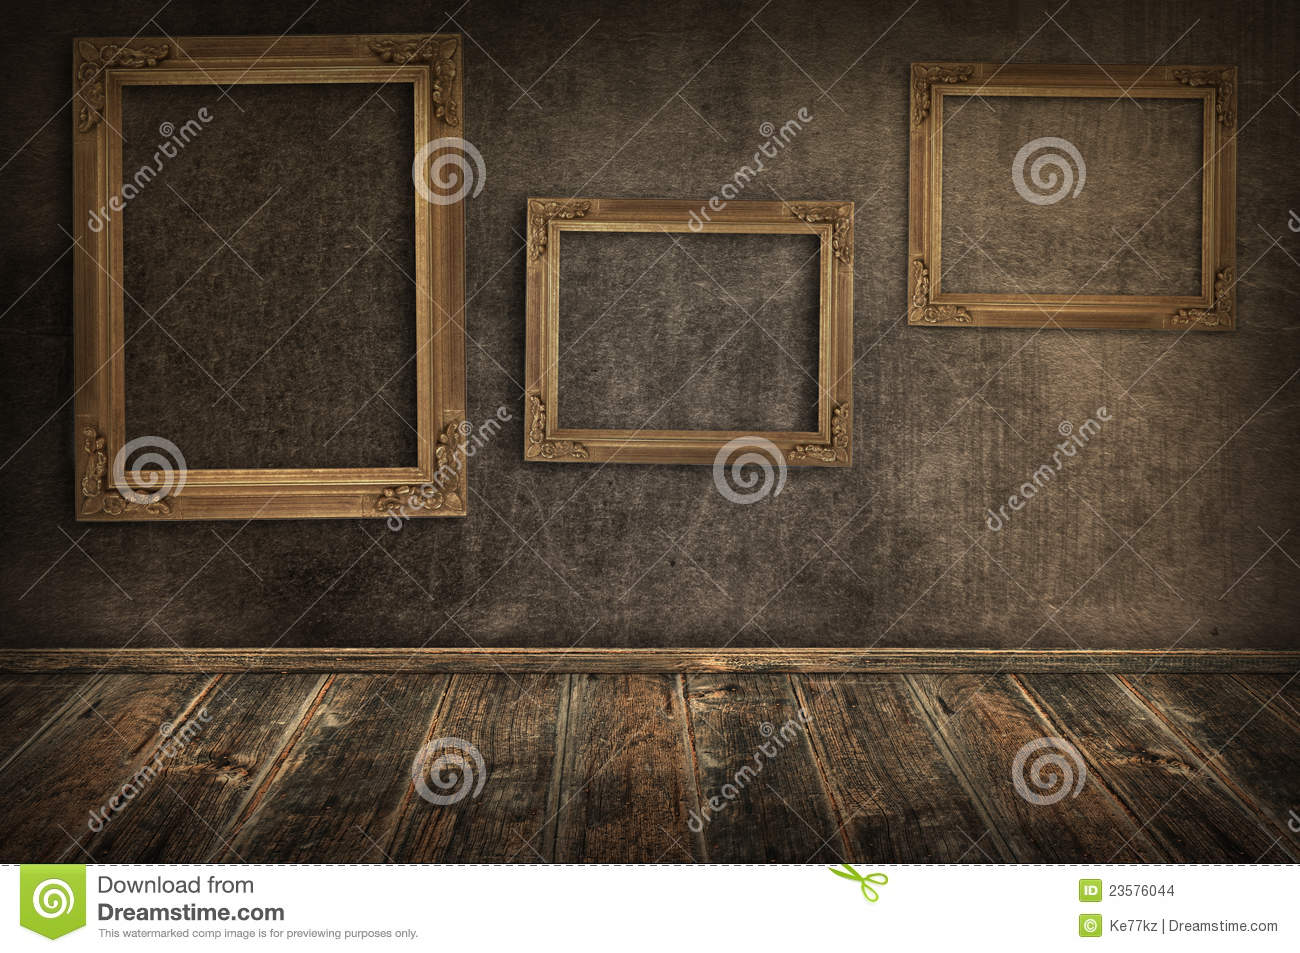 Three vintage frames on the wall.